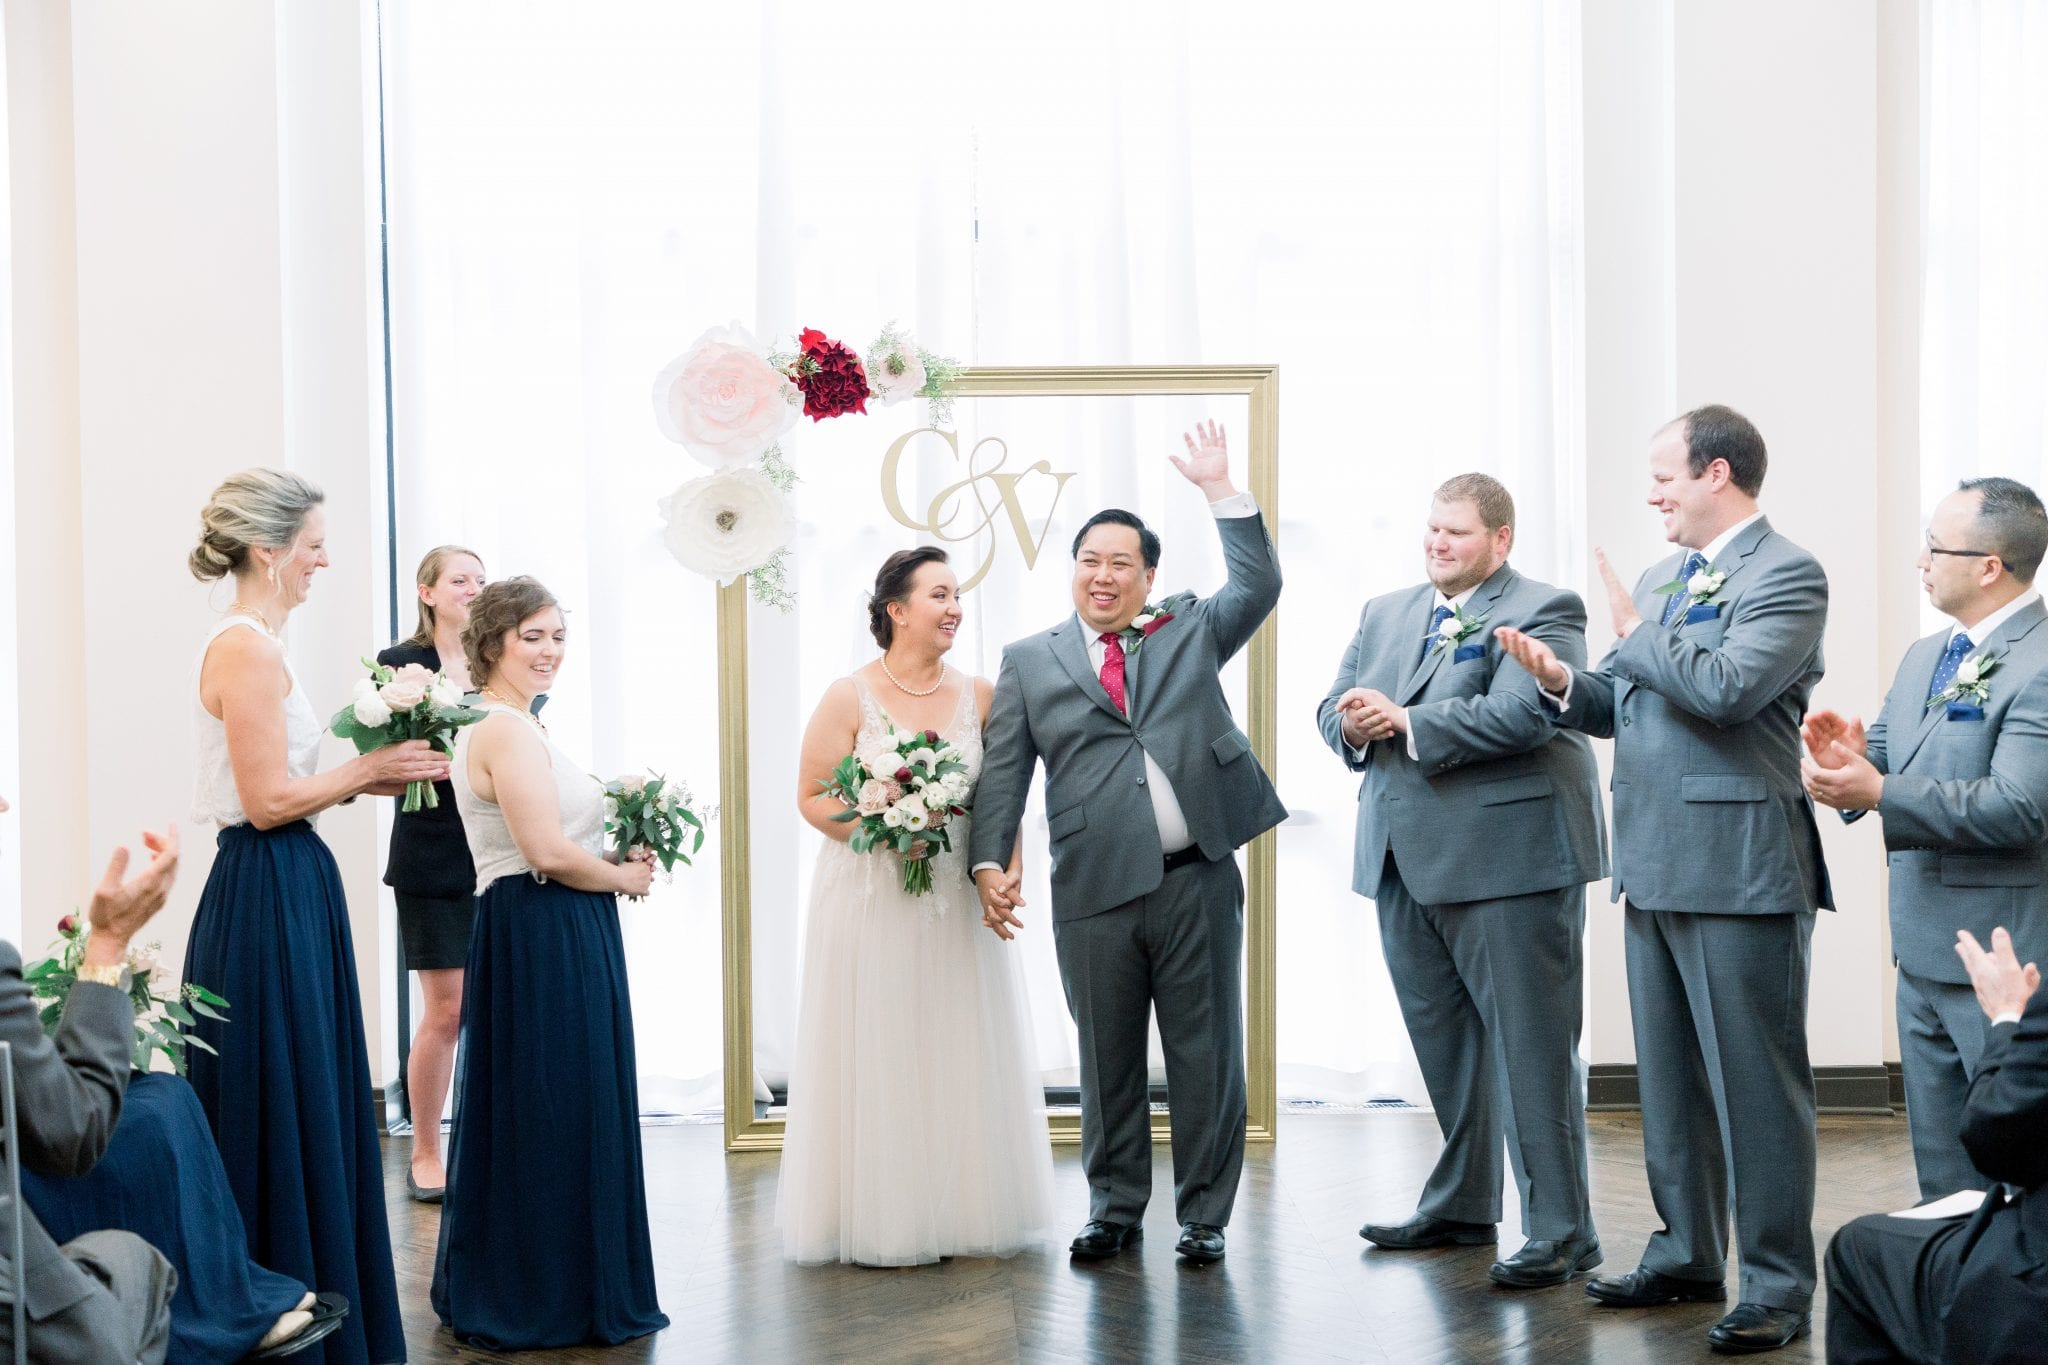 how to become a wedding officiant near me